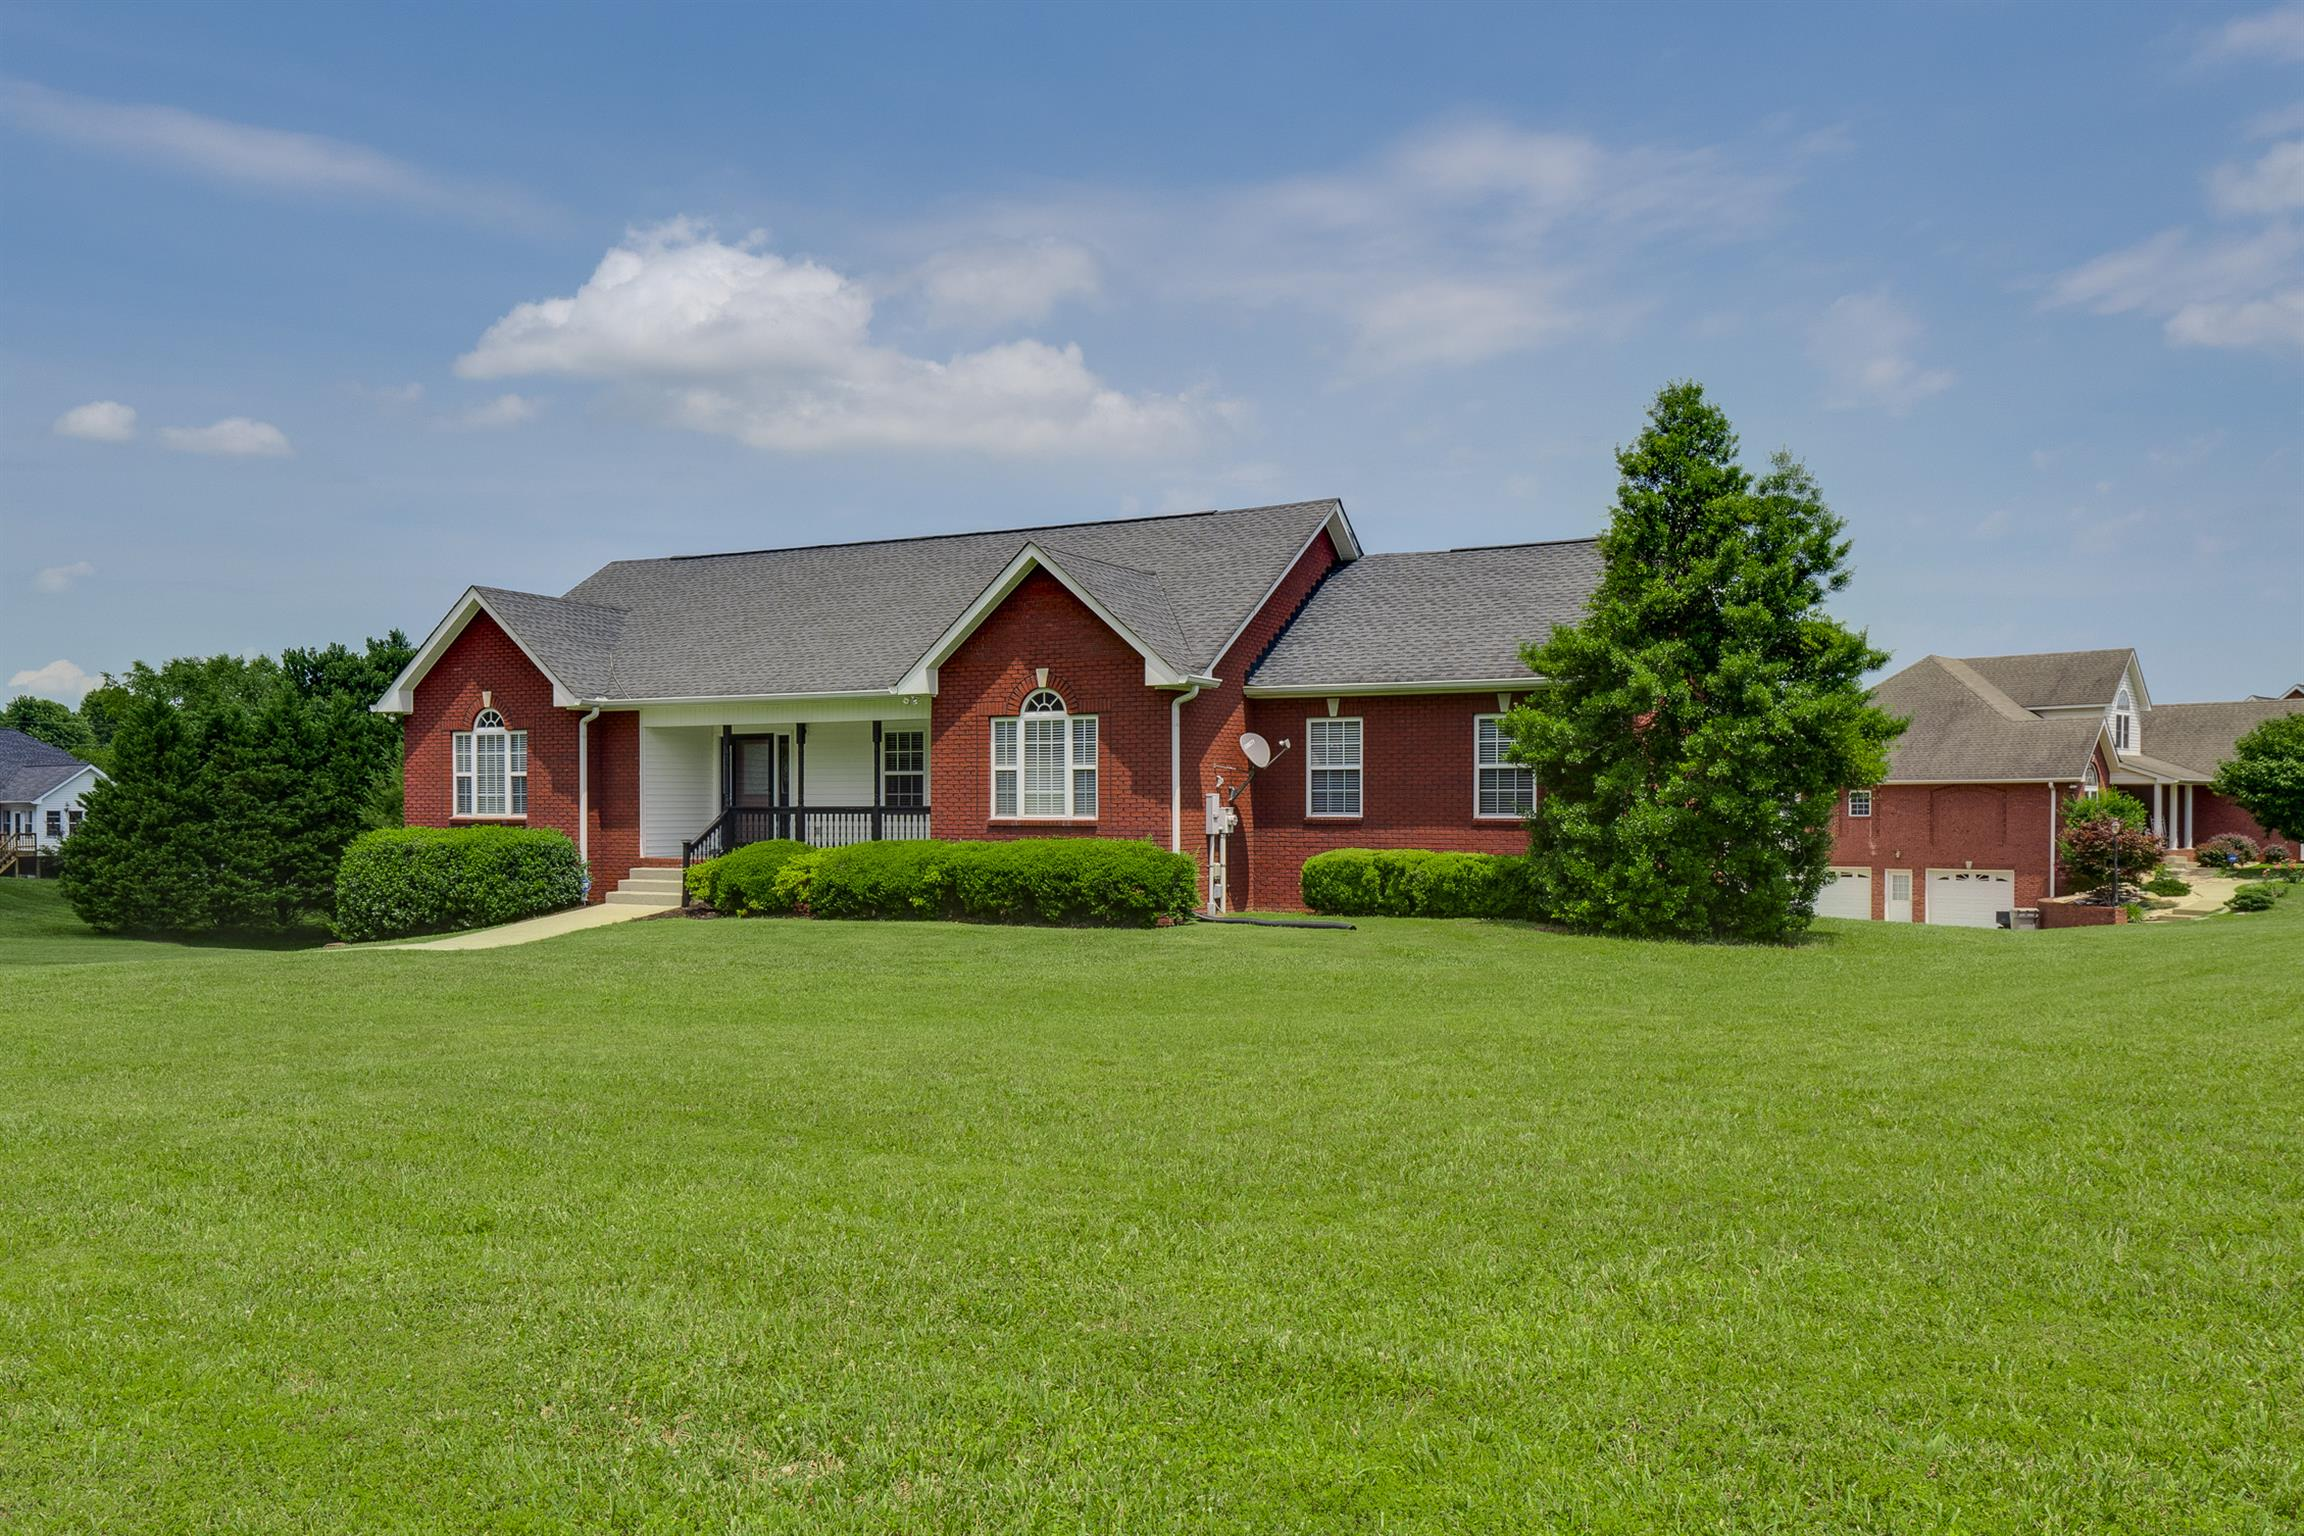 1009 Trent Pl, Pleasant View, TN 37146 - Pleasant View, TN real estate listing